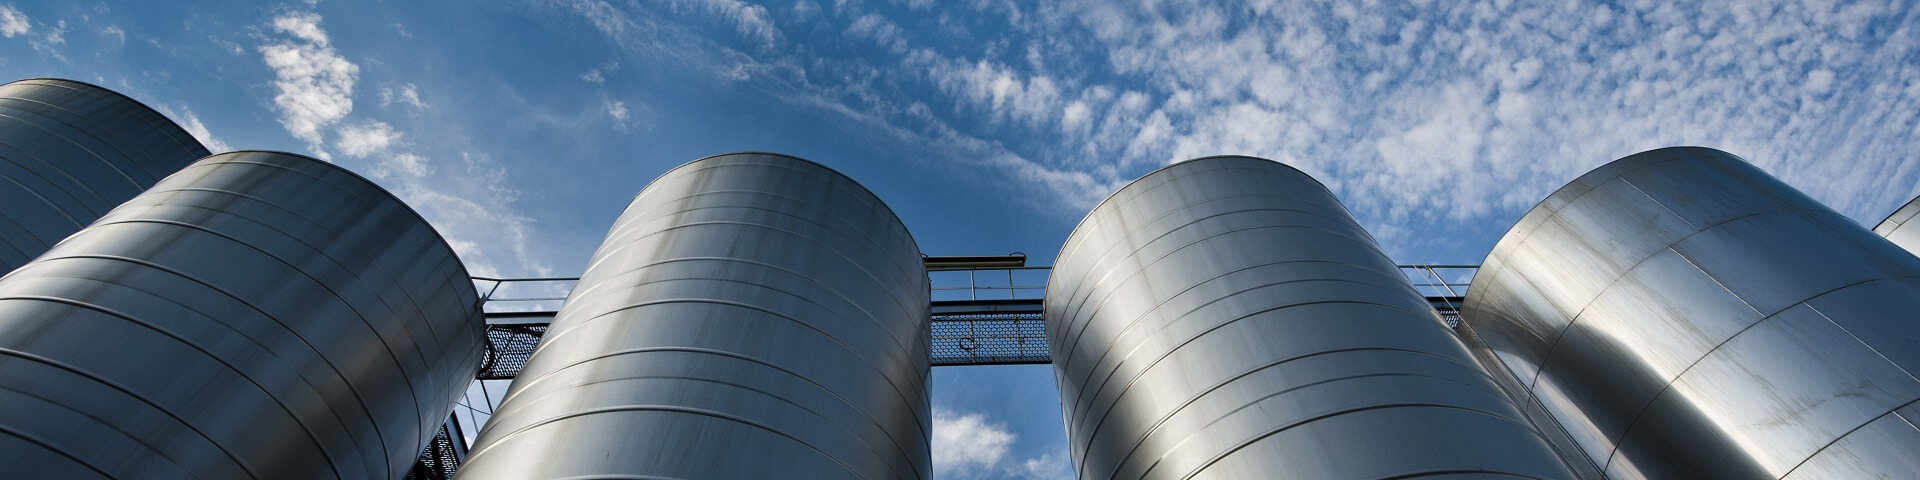 commercial brewing tank farm 1920x480